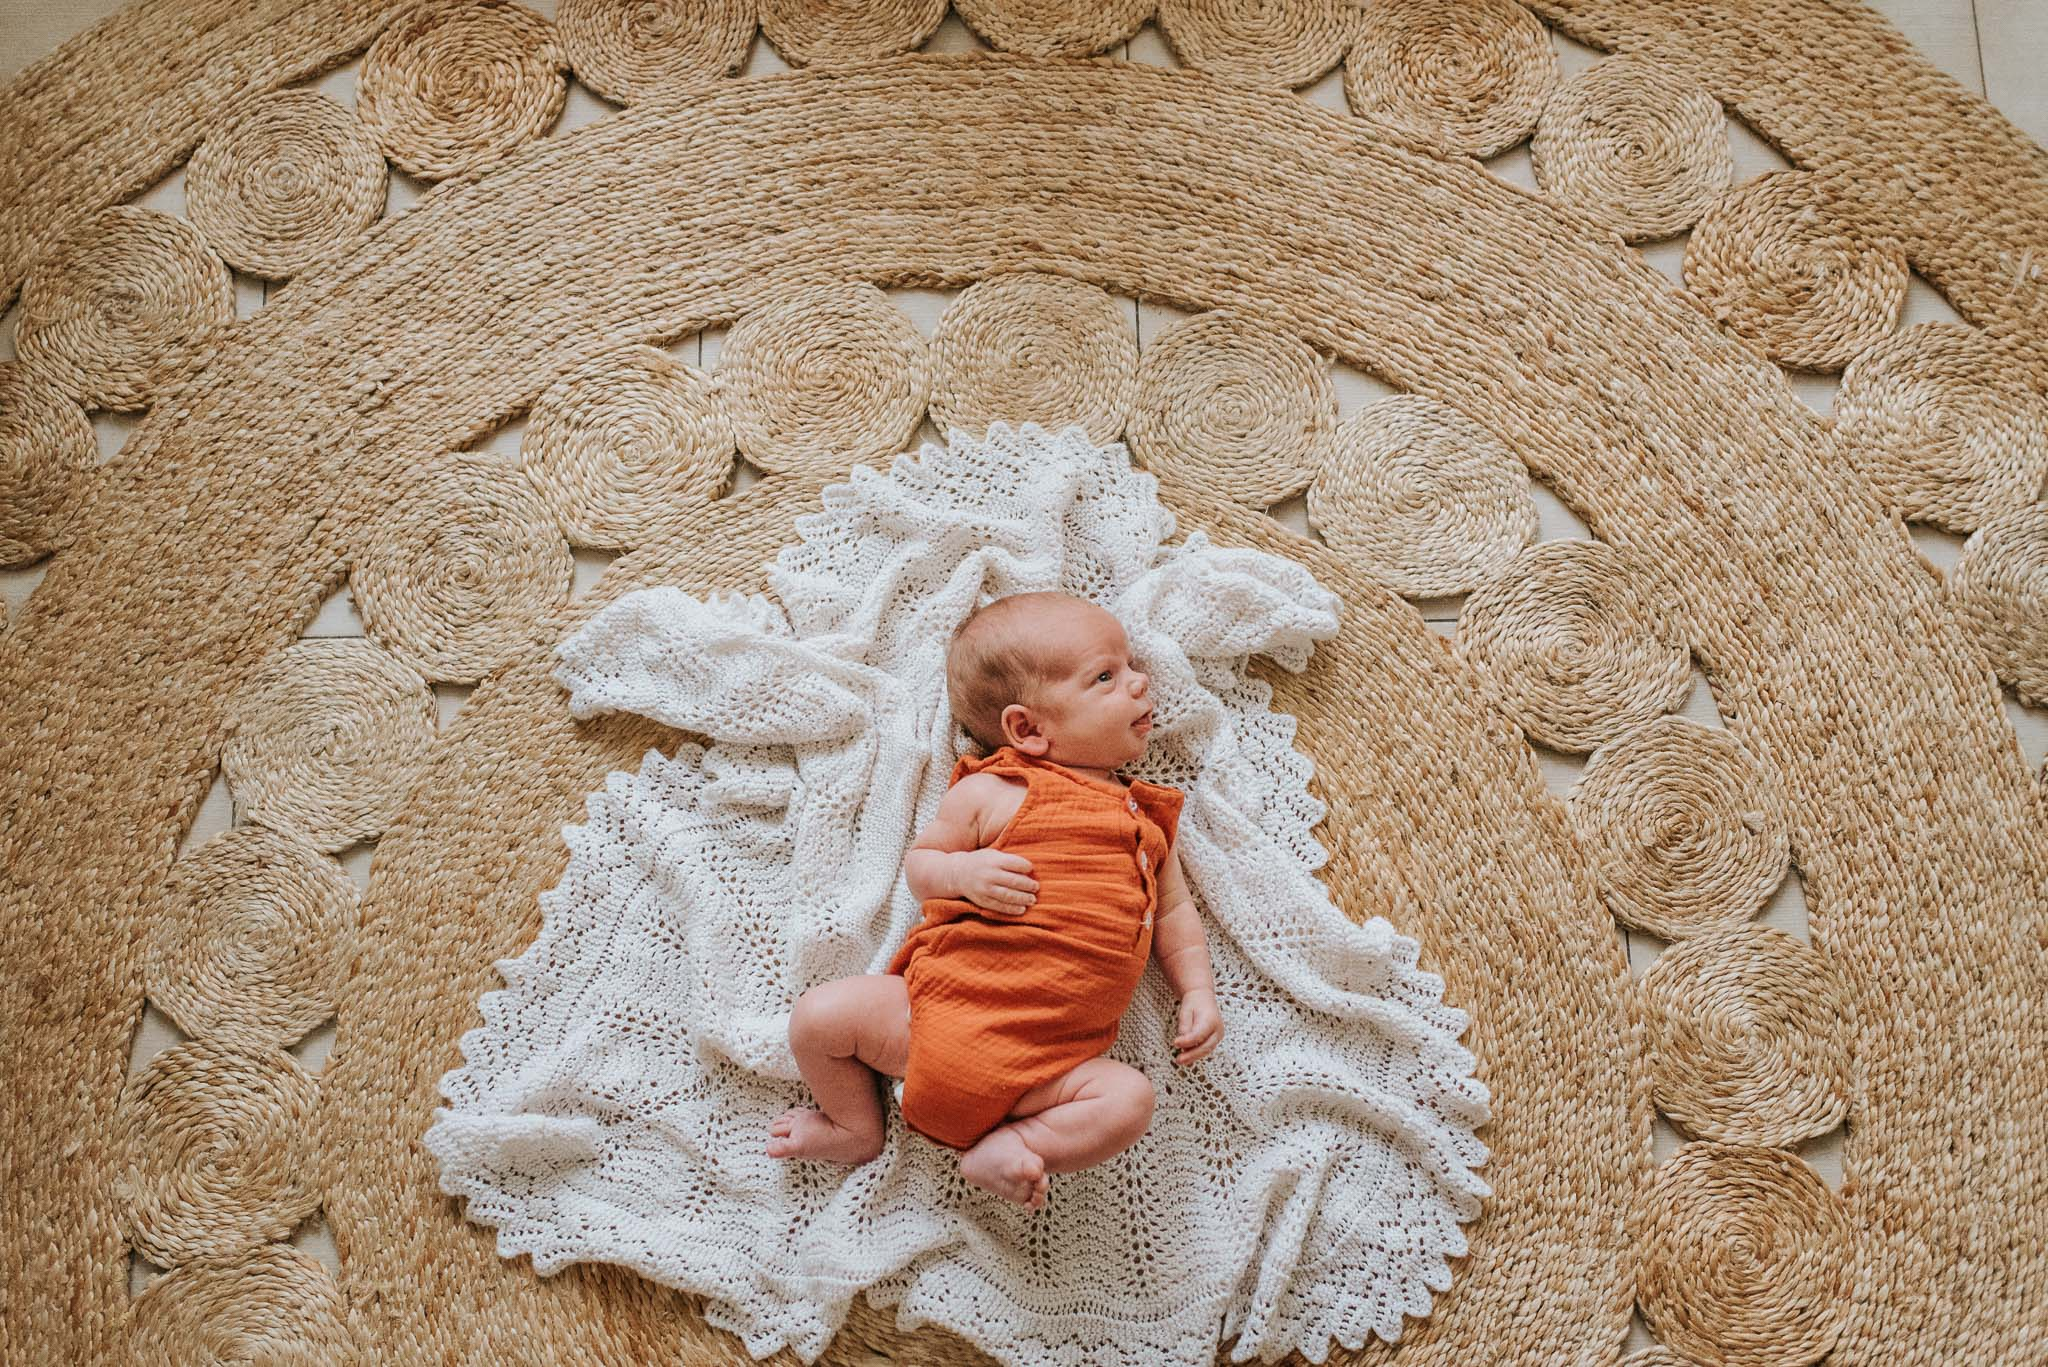 Melbourne Newborn Photographer - Jess Worrall Photography - natural in home lifestyle newborn photography.jpg